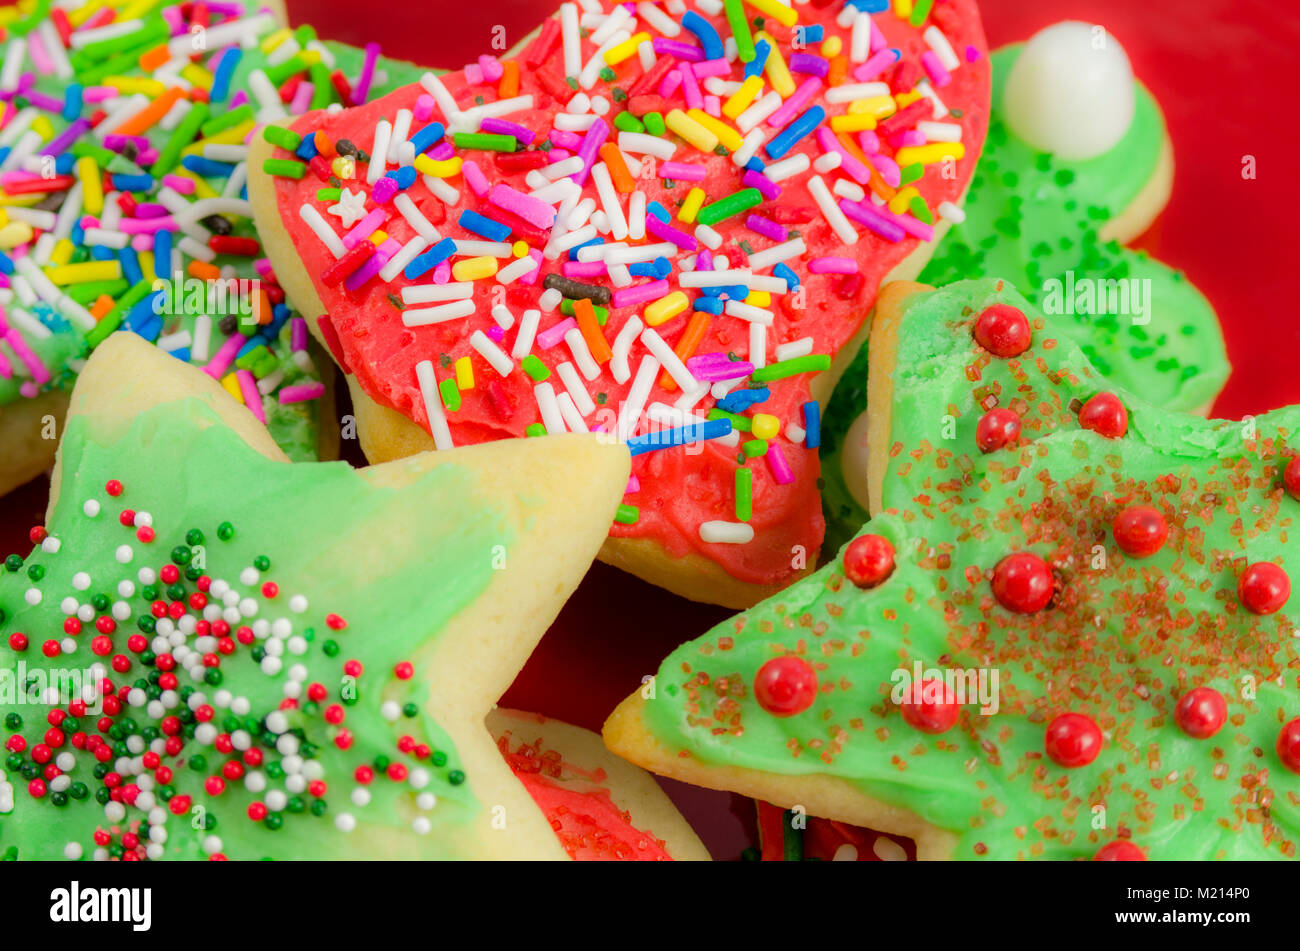 Decorated Delicious Christmas Cookies With Colorful Frosting And